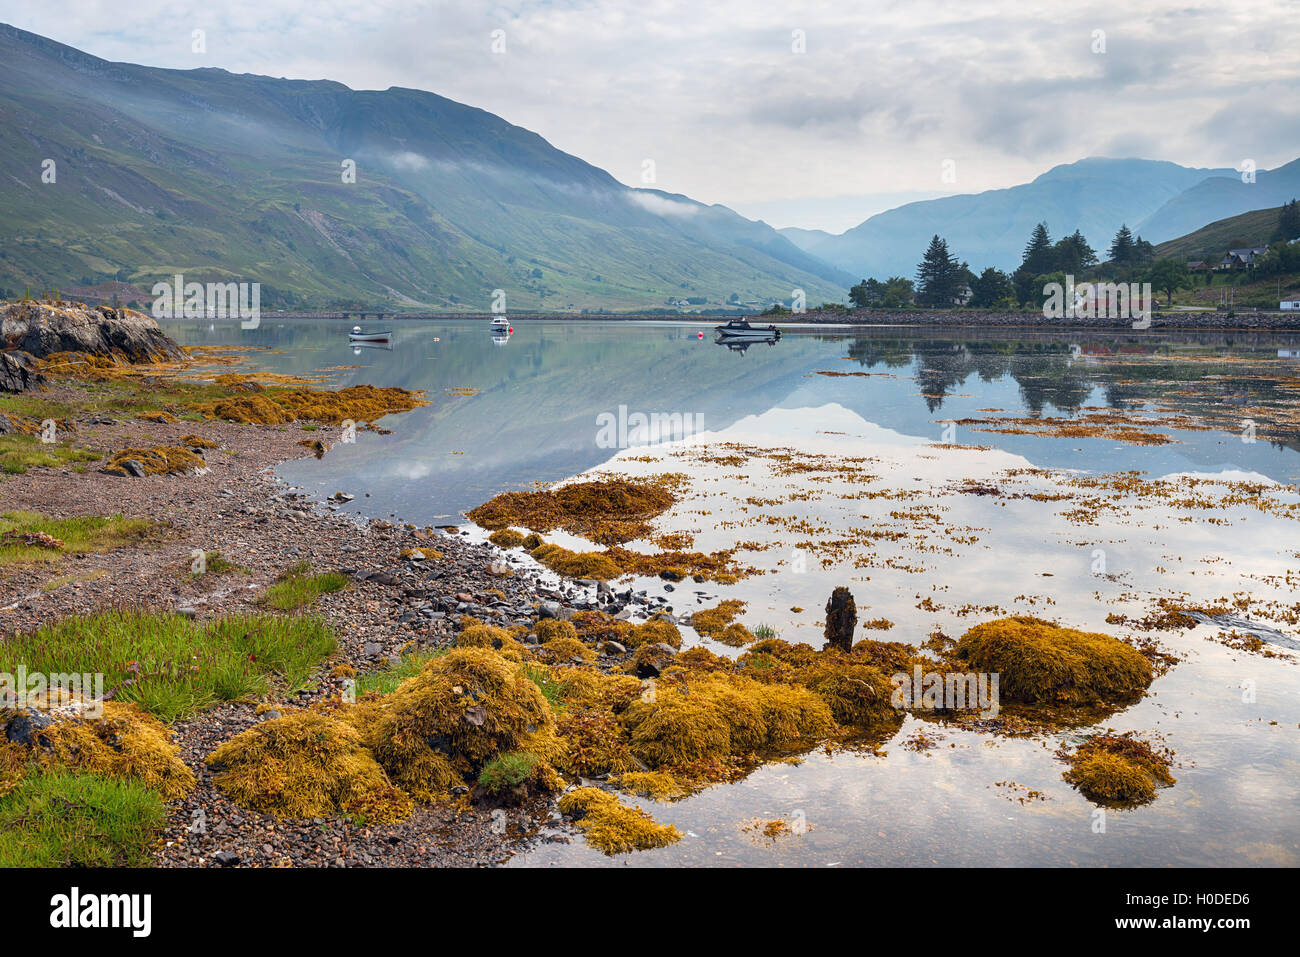 Loch Duich in the highlands of Scotland - Stock Image